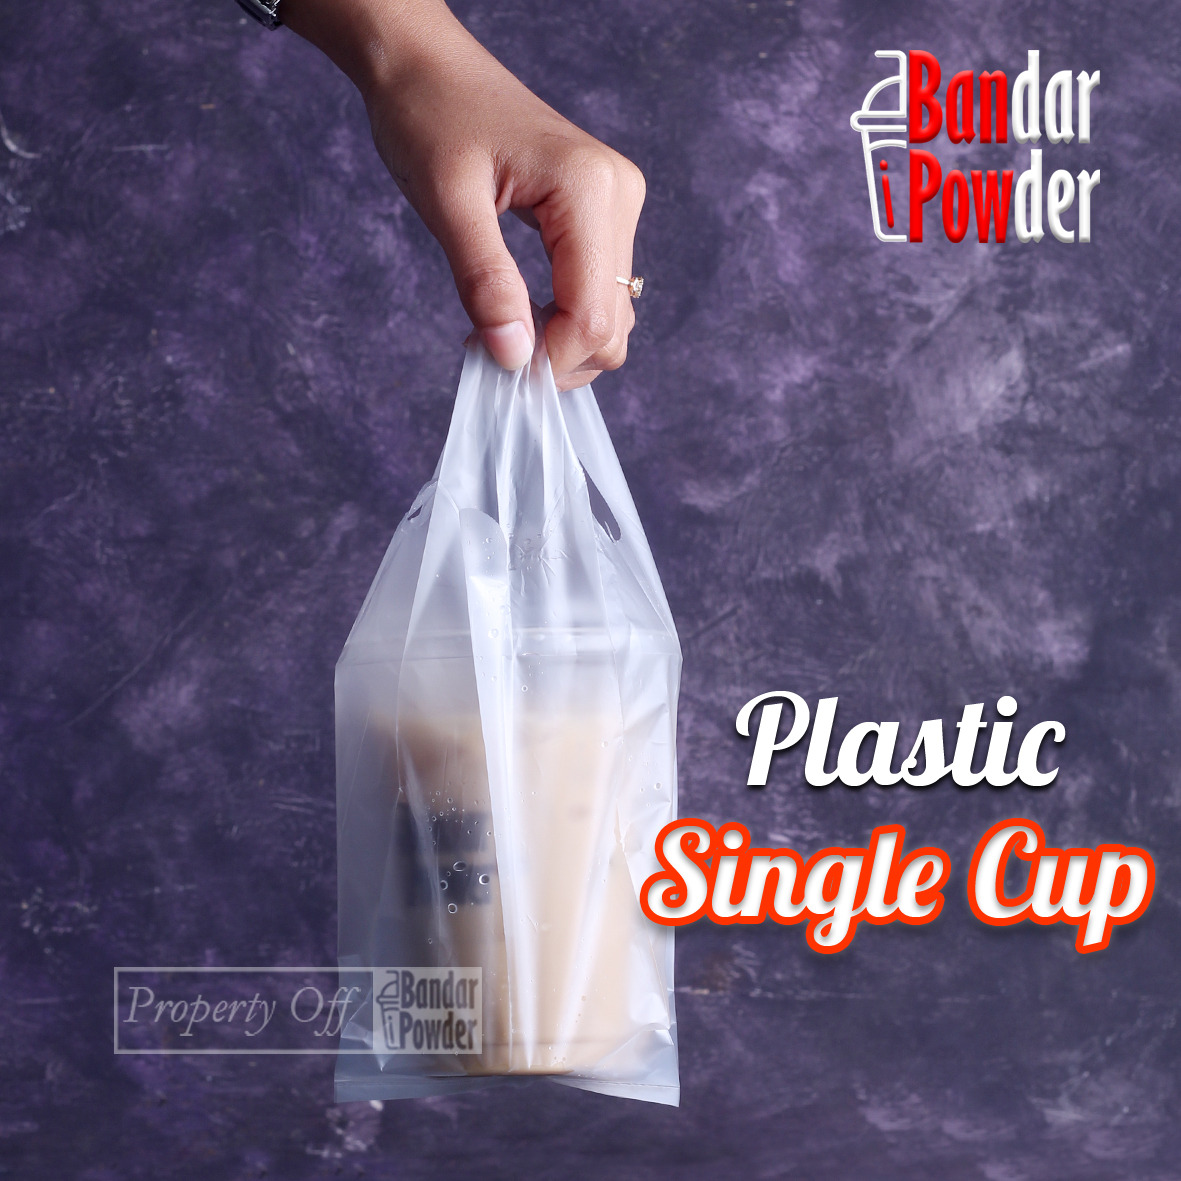 Jual Plastik Kresek Take Away Double Cup